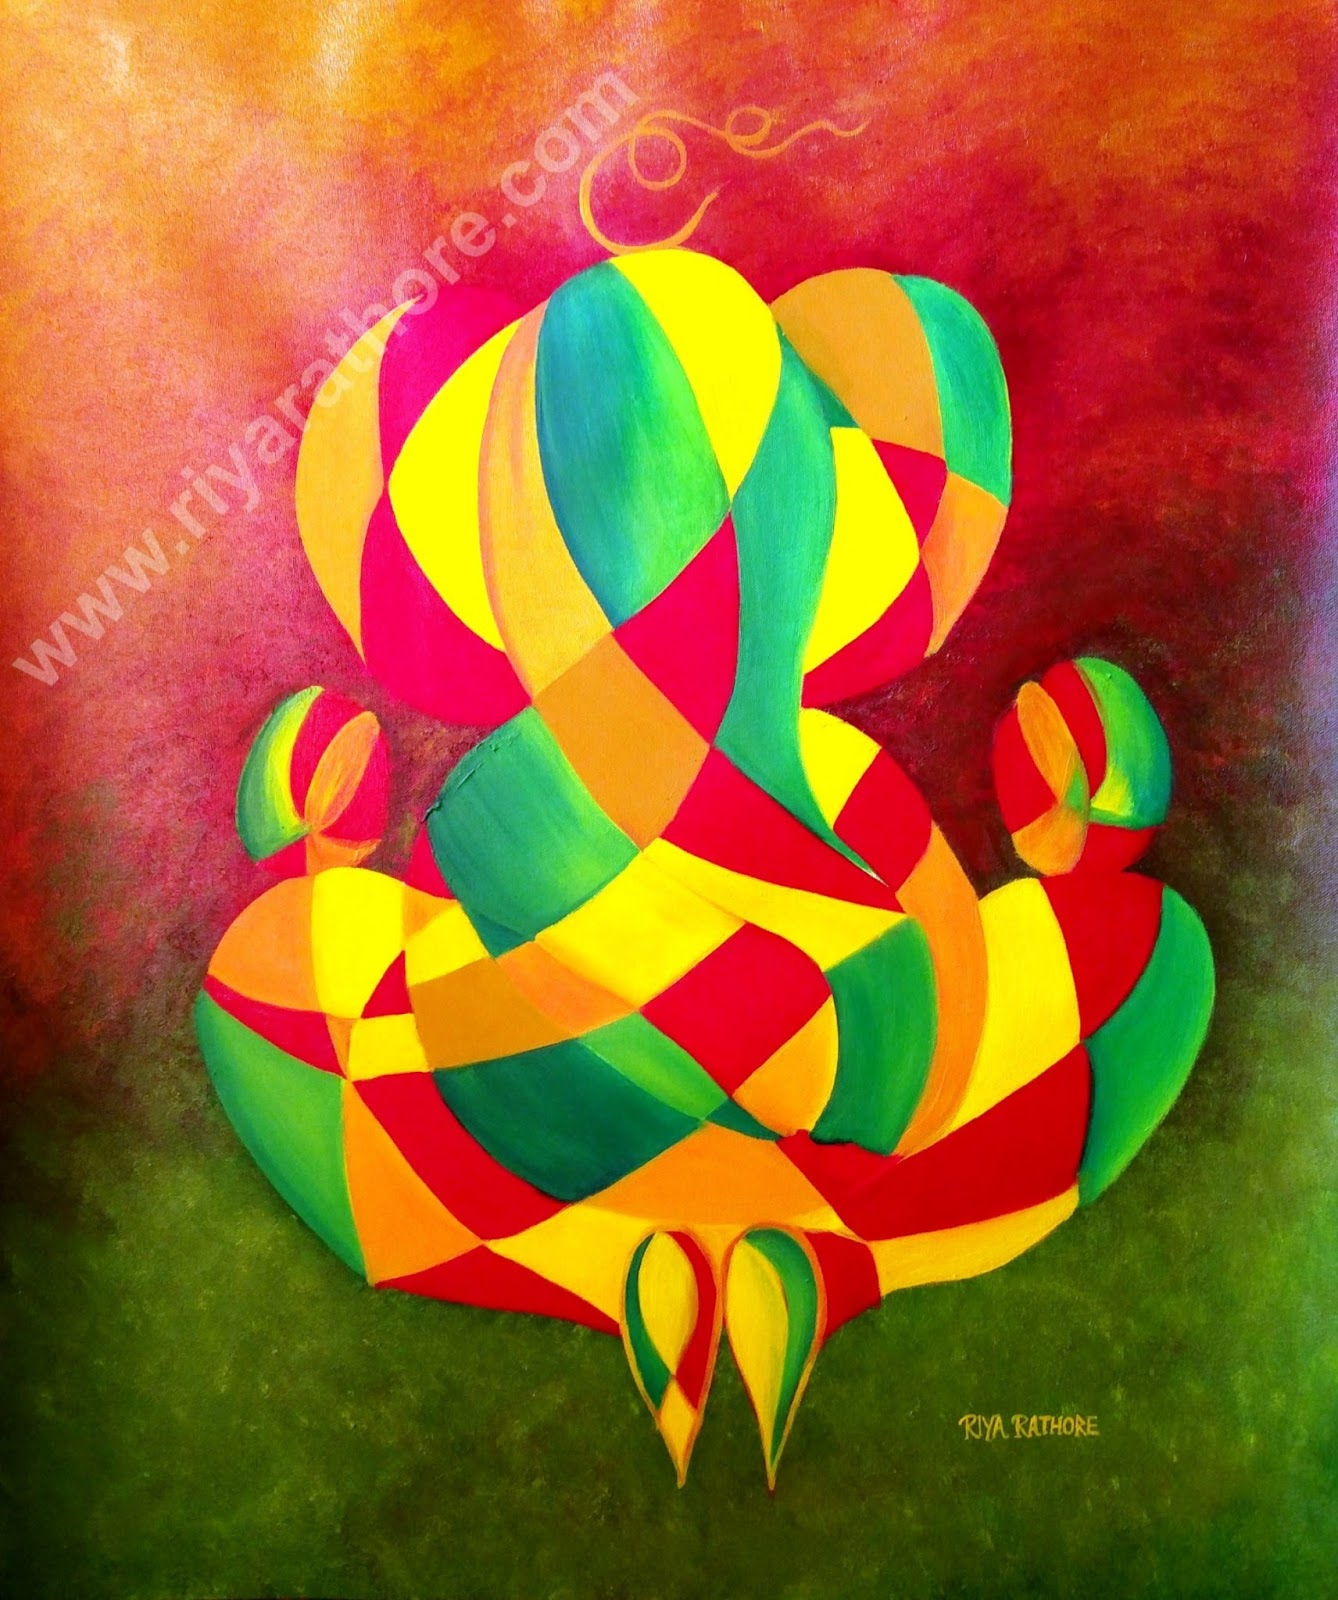 Lord ganesha multi color painting hd image - Lord Ganesha Ji Oil Painting Abstract Iii